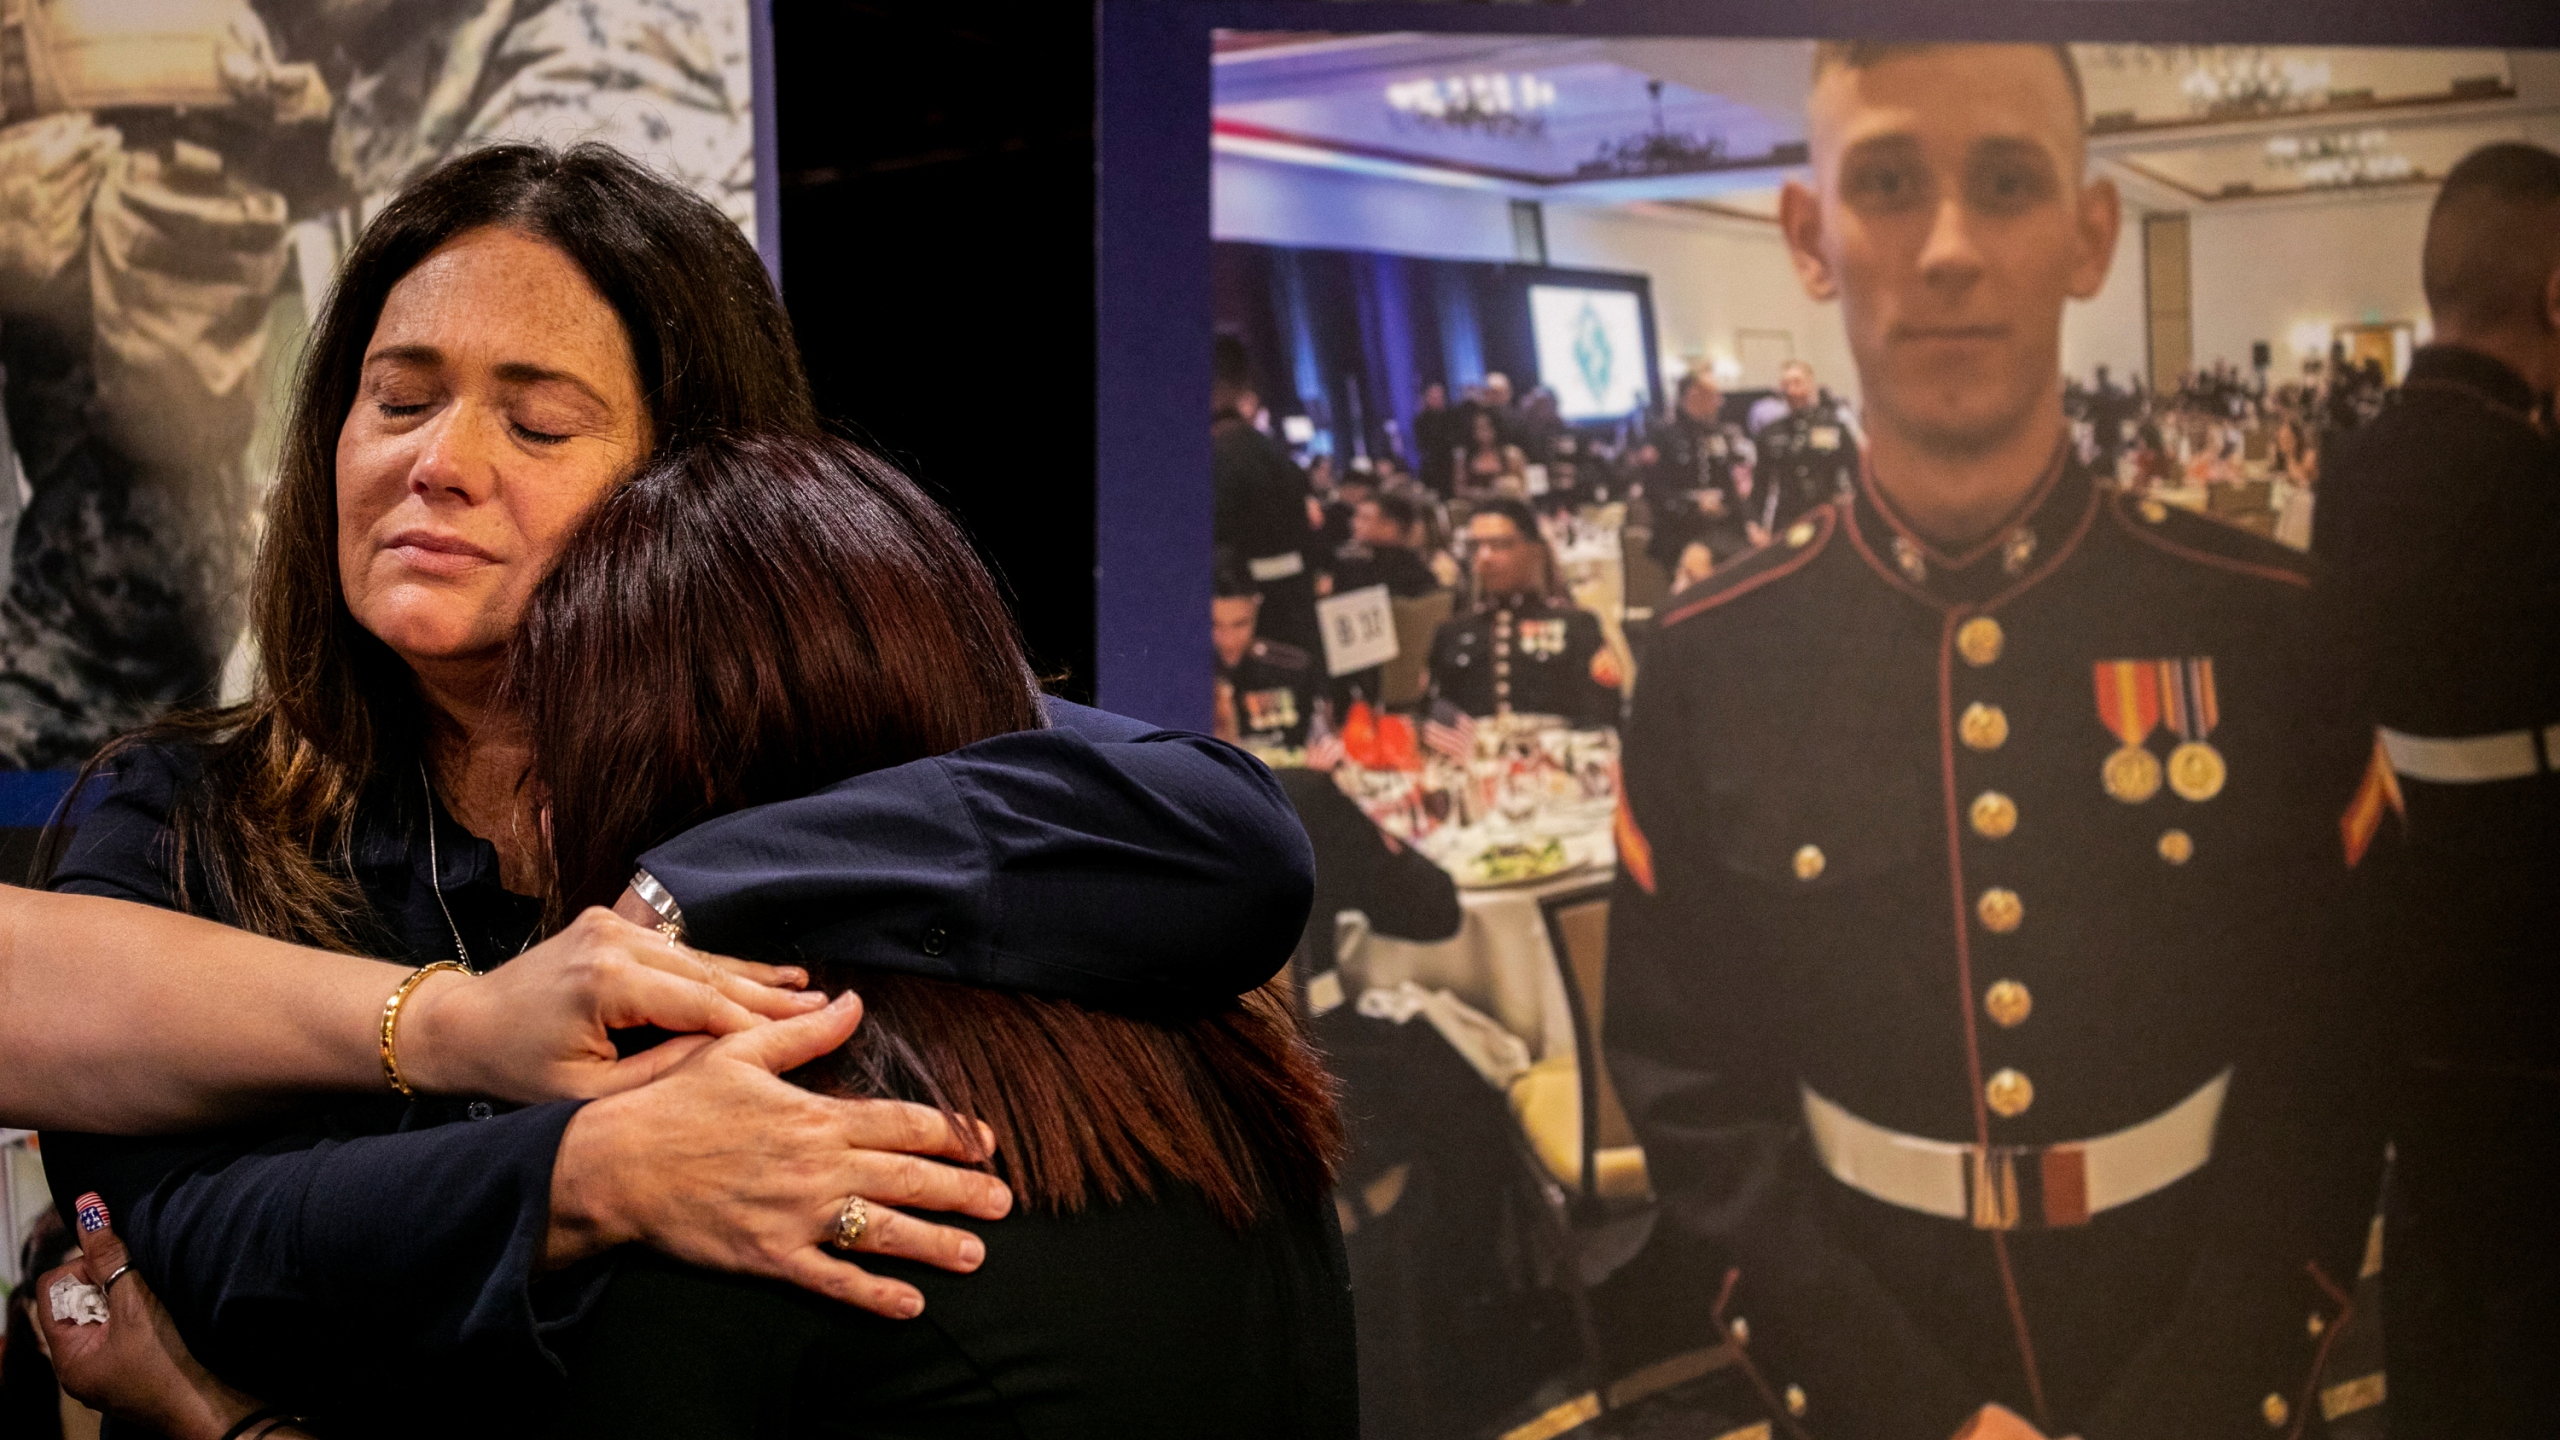 Christiana Sweetwood, mother of Marine Lance Corporal Chase Sweetwood, hand coming from left, Aleta Bath, mother of Private First Class Evan Bath and Lupita Garcia, mother of Marine Lance Corporal Marco Barranco embrace each other at a press conference next to a picture of Chase Sweetwood July 29, 2021, in Oceanside, Calif. (Sam Hodgson/The San Diego Union-Tribune via AP)